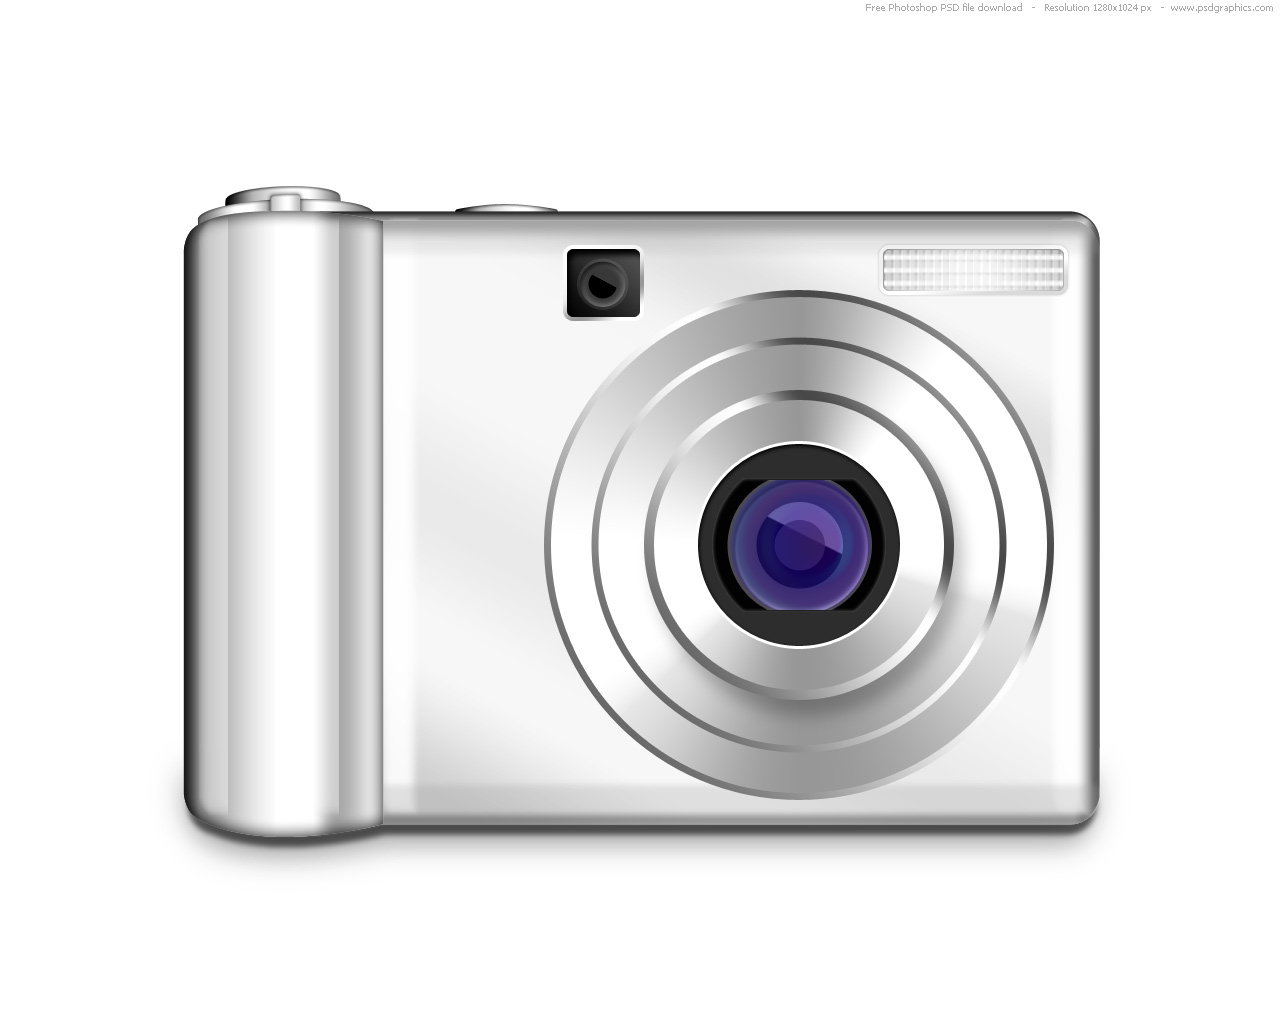 Full size – JPG preview: Photo camera icon